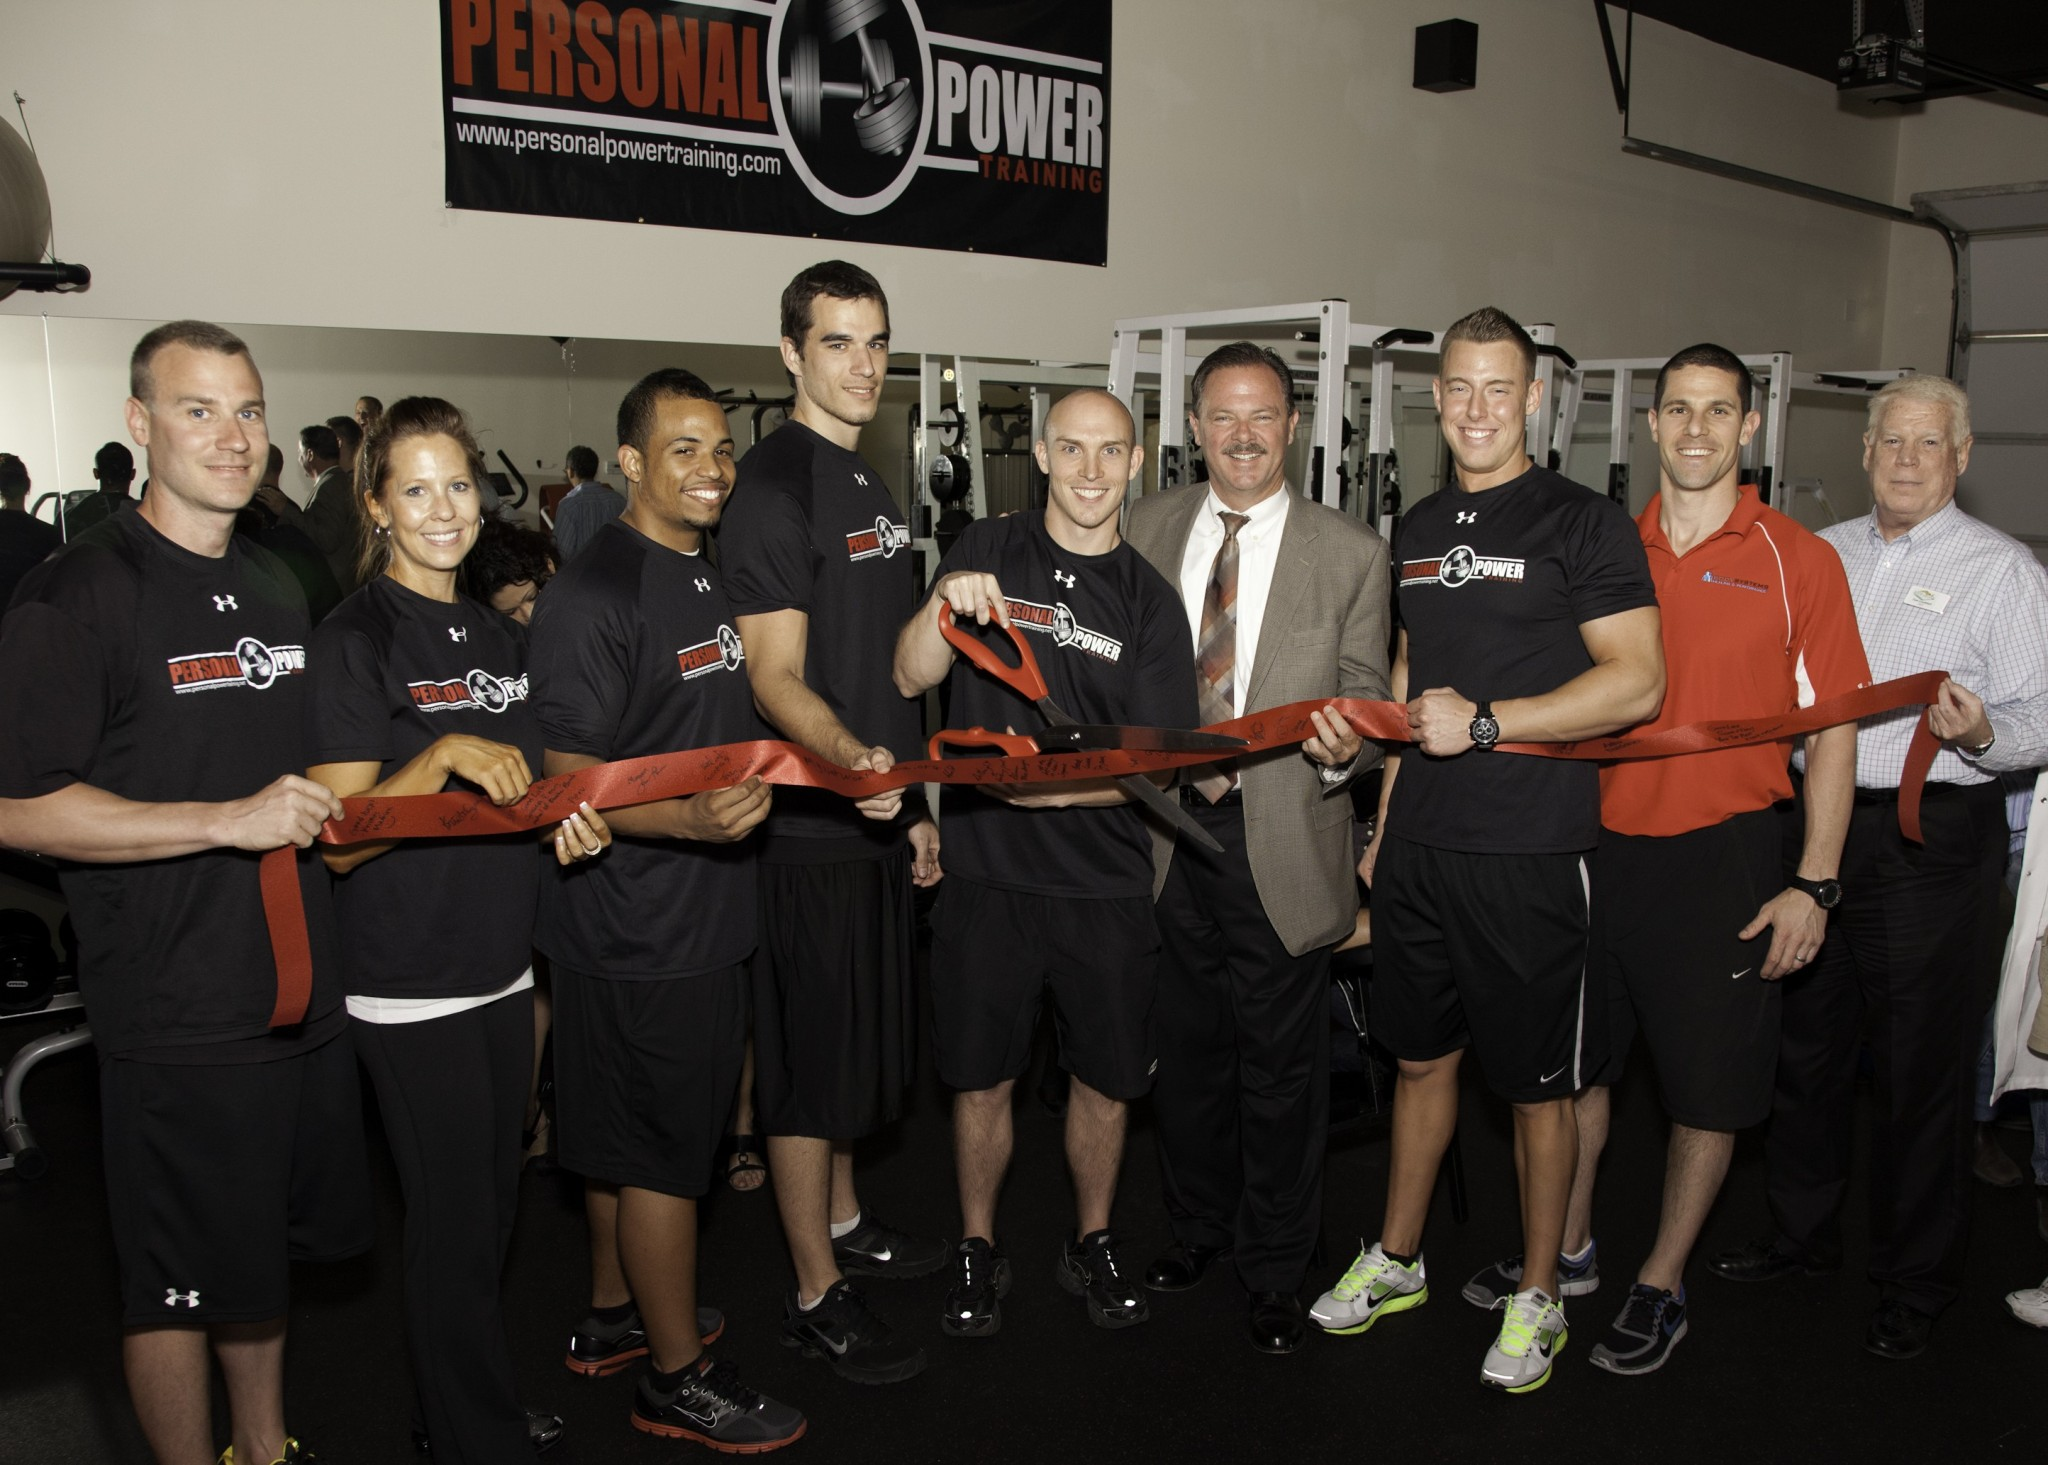 personal power training party